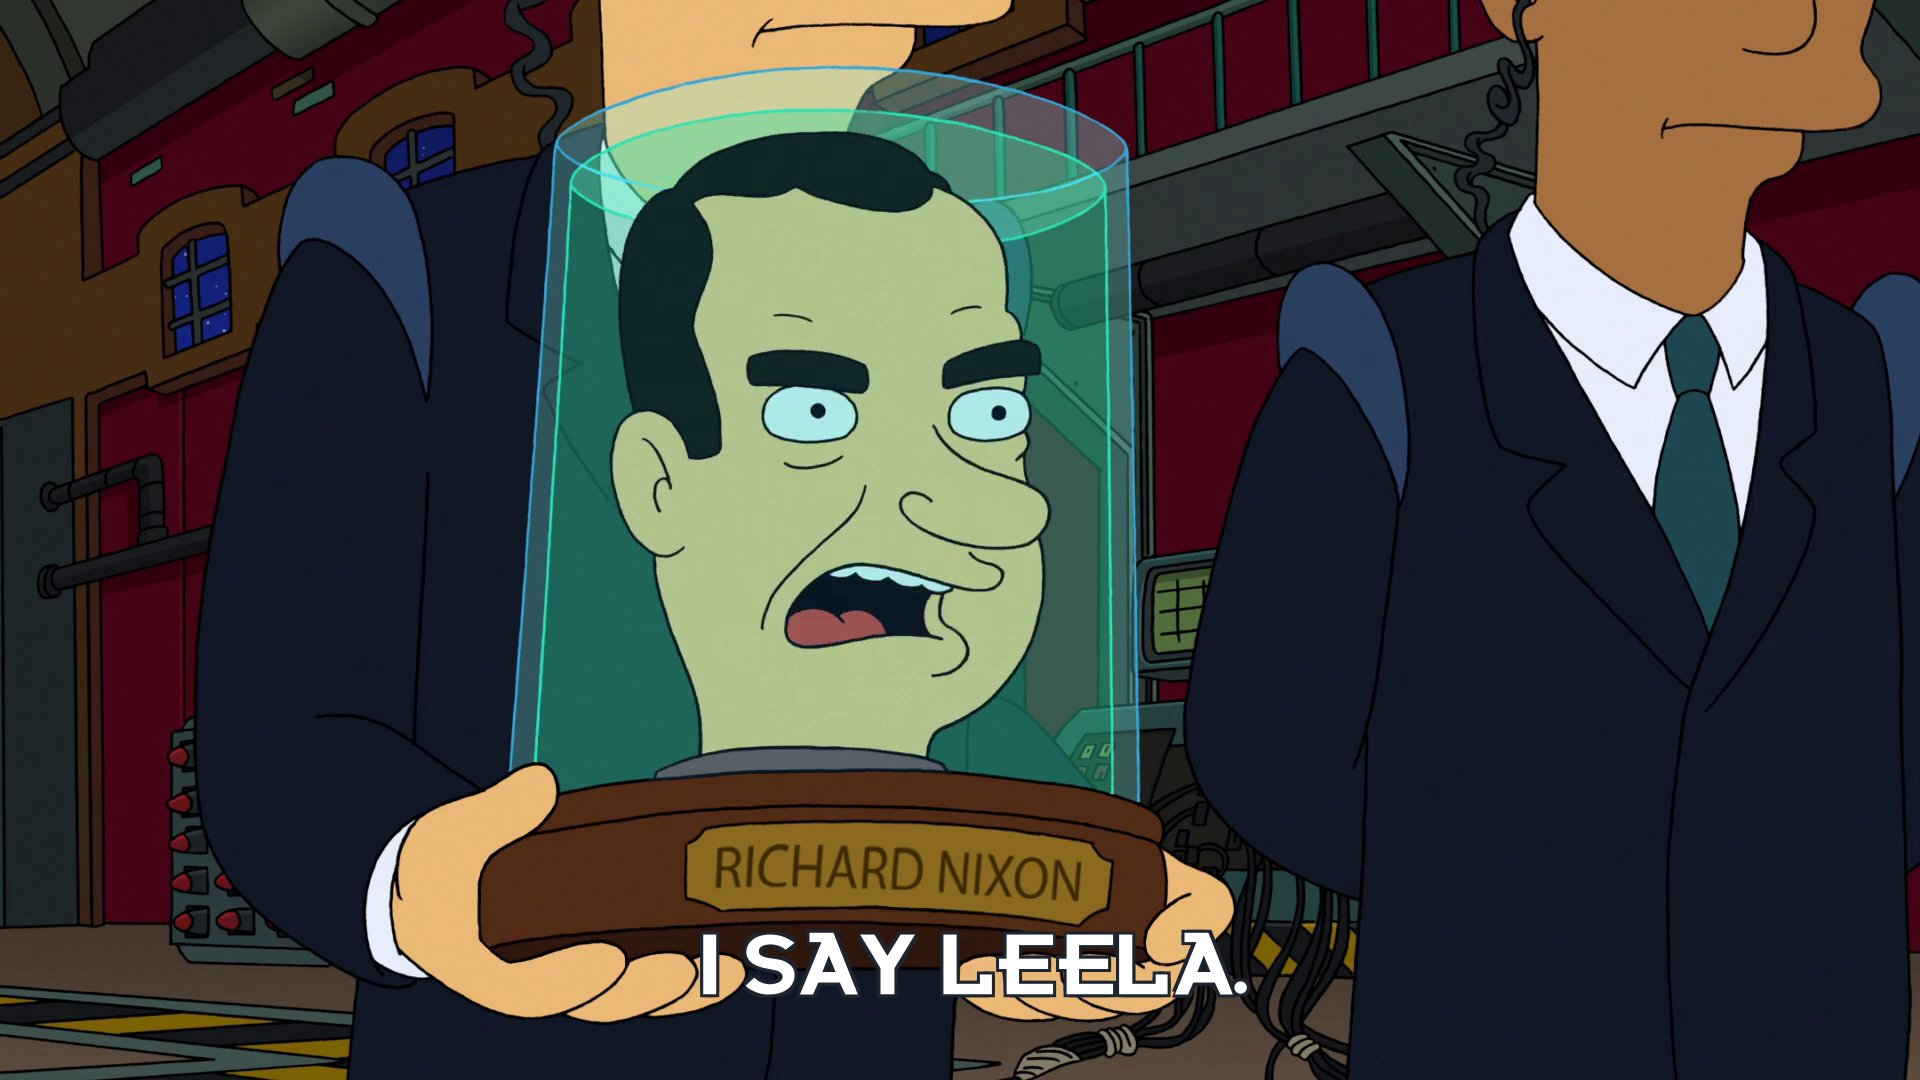 Richard Nixon's head: I say Leela.